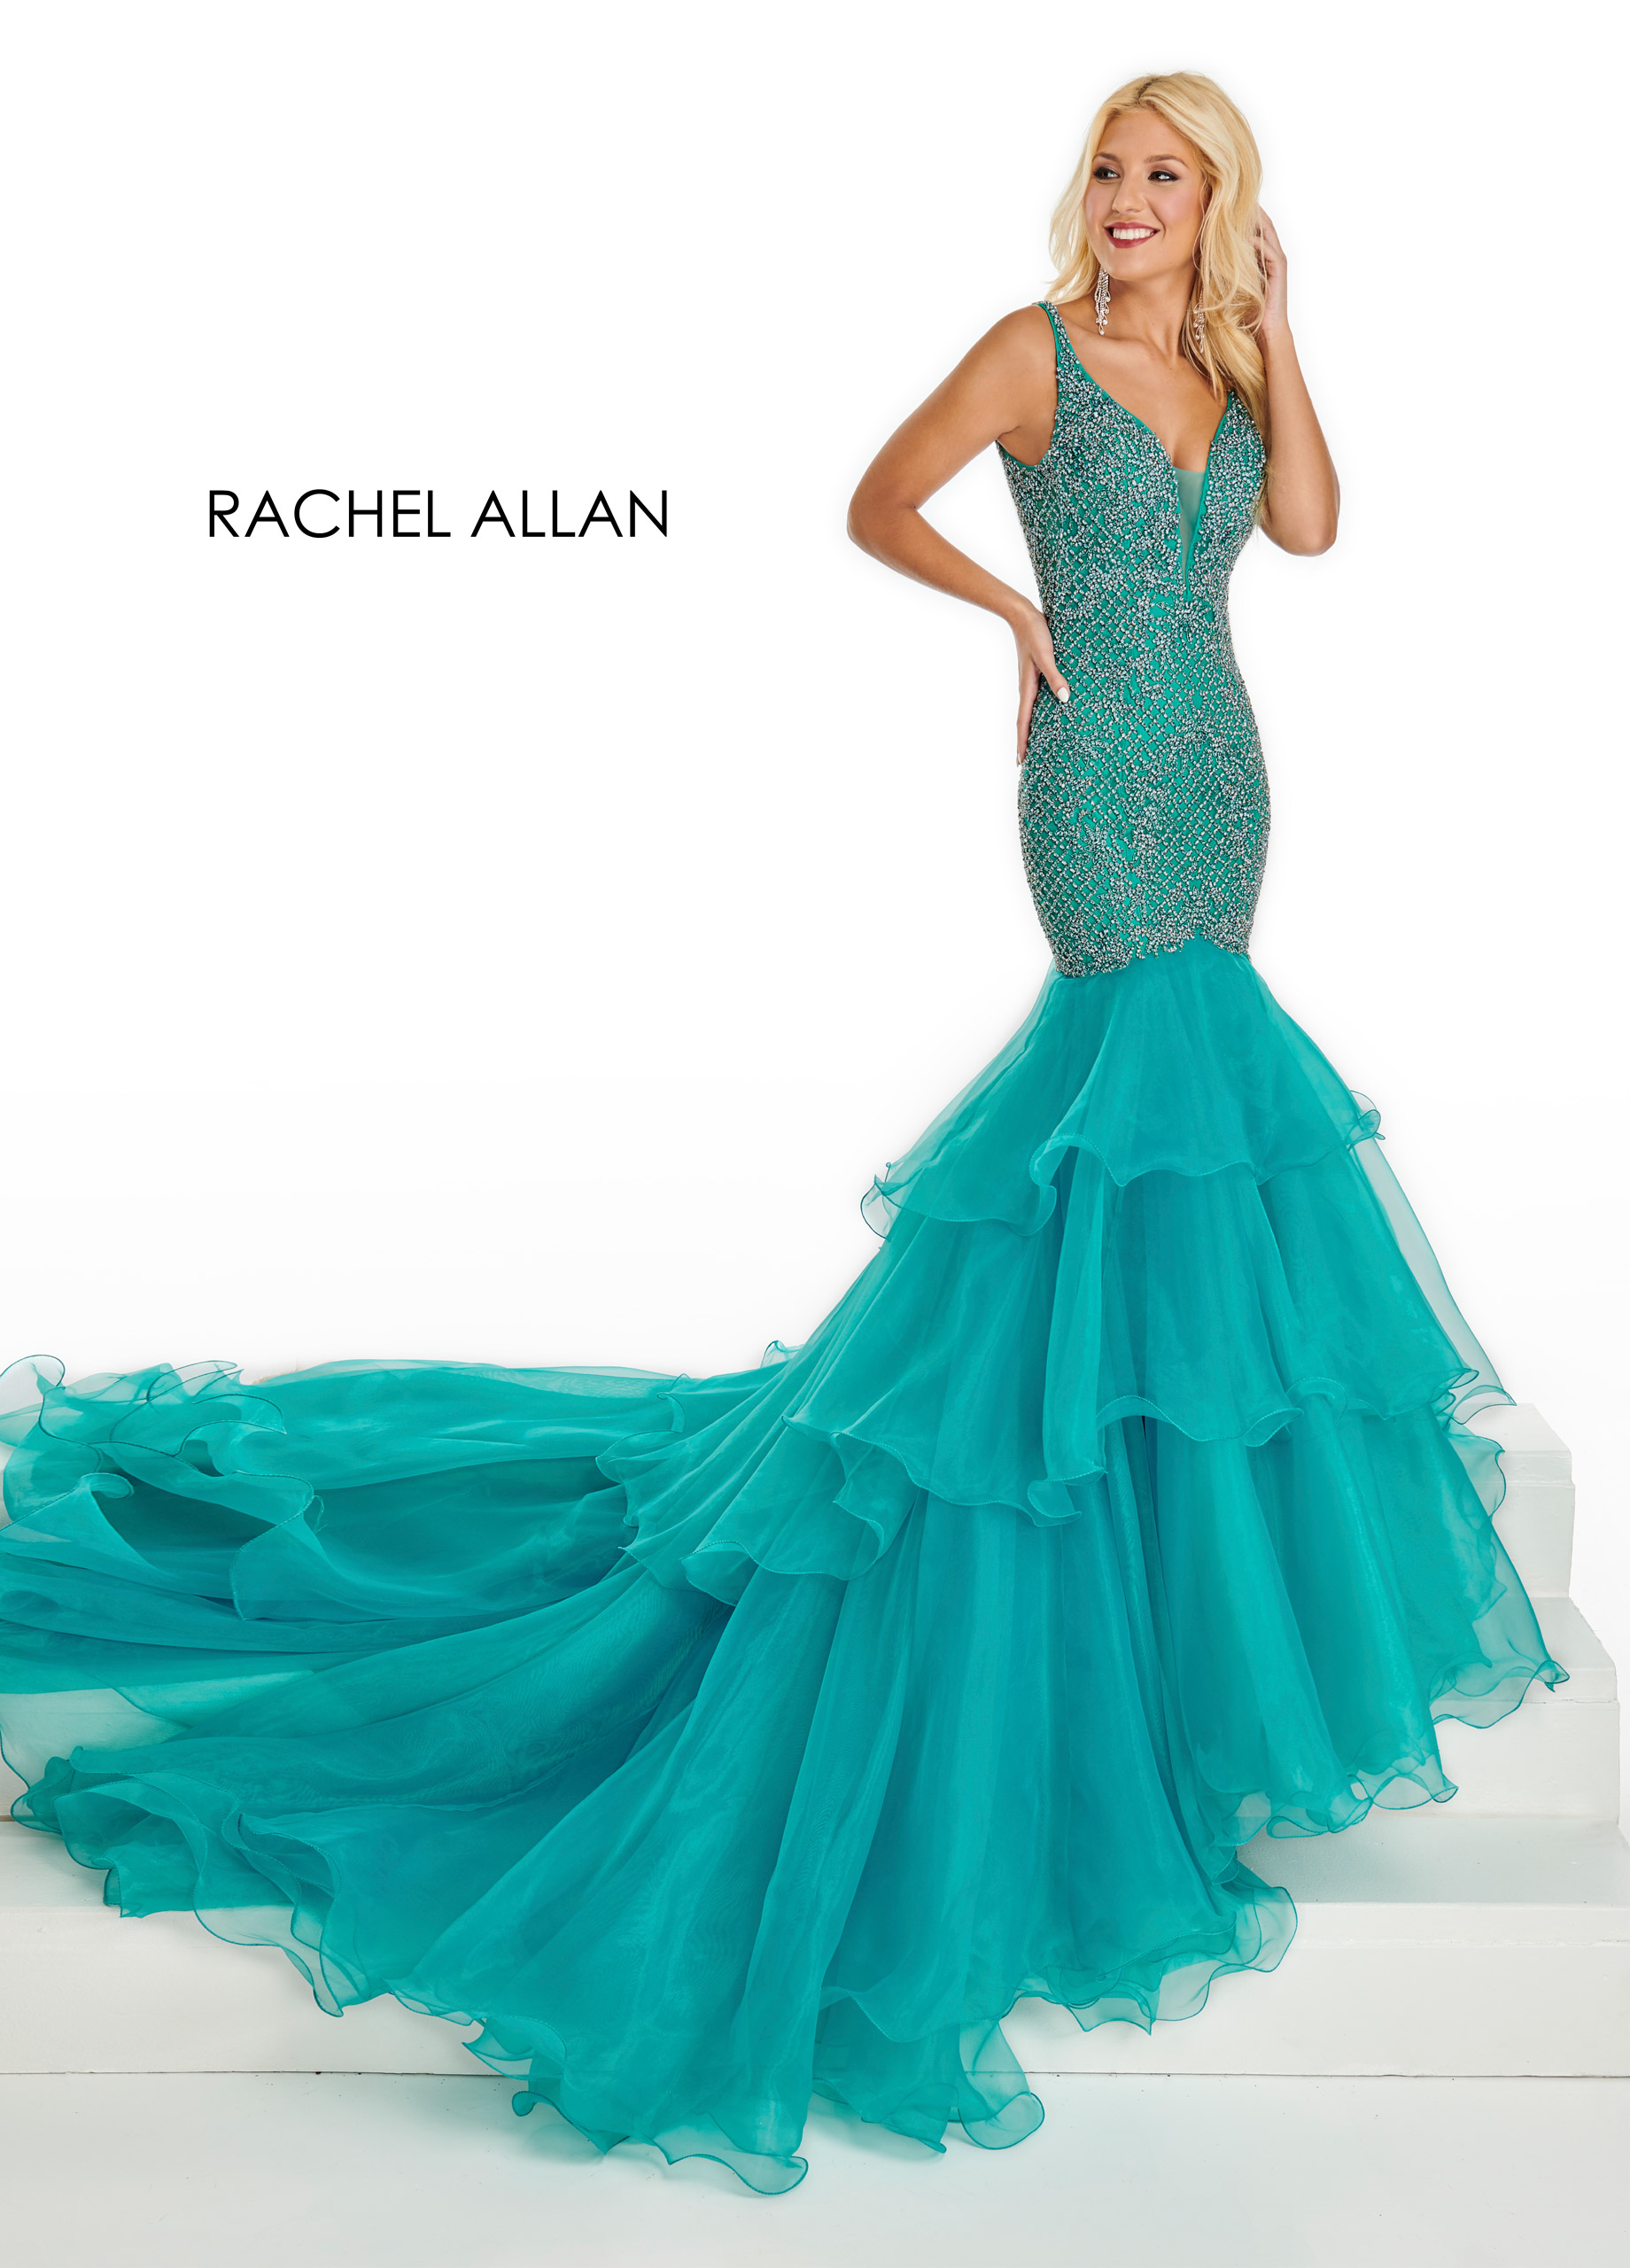 V-Neck Mermaid Pageant Dresses in Turquoise Color